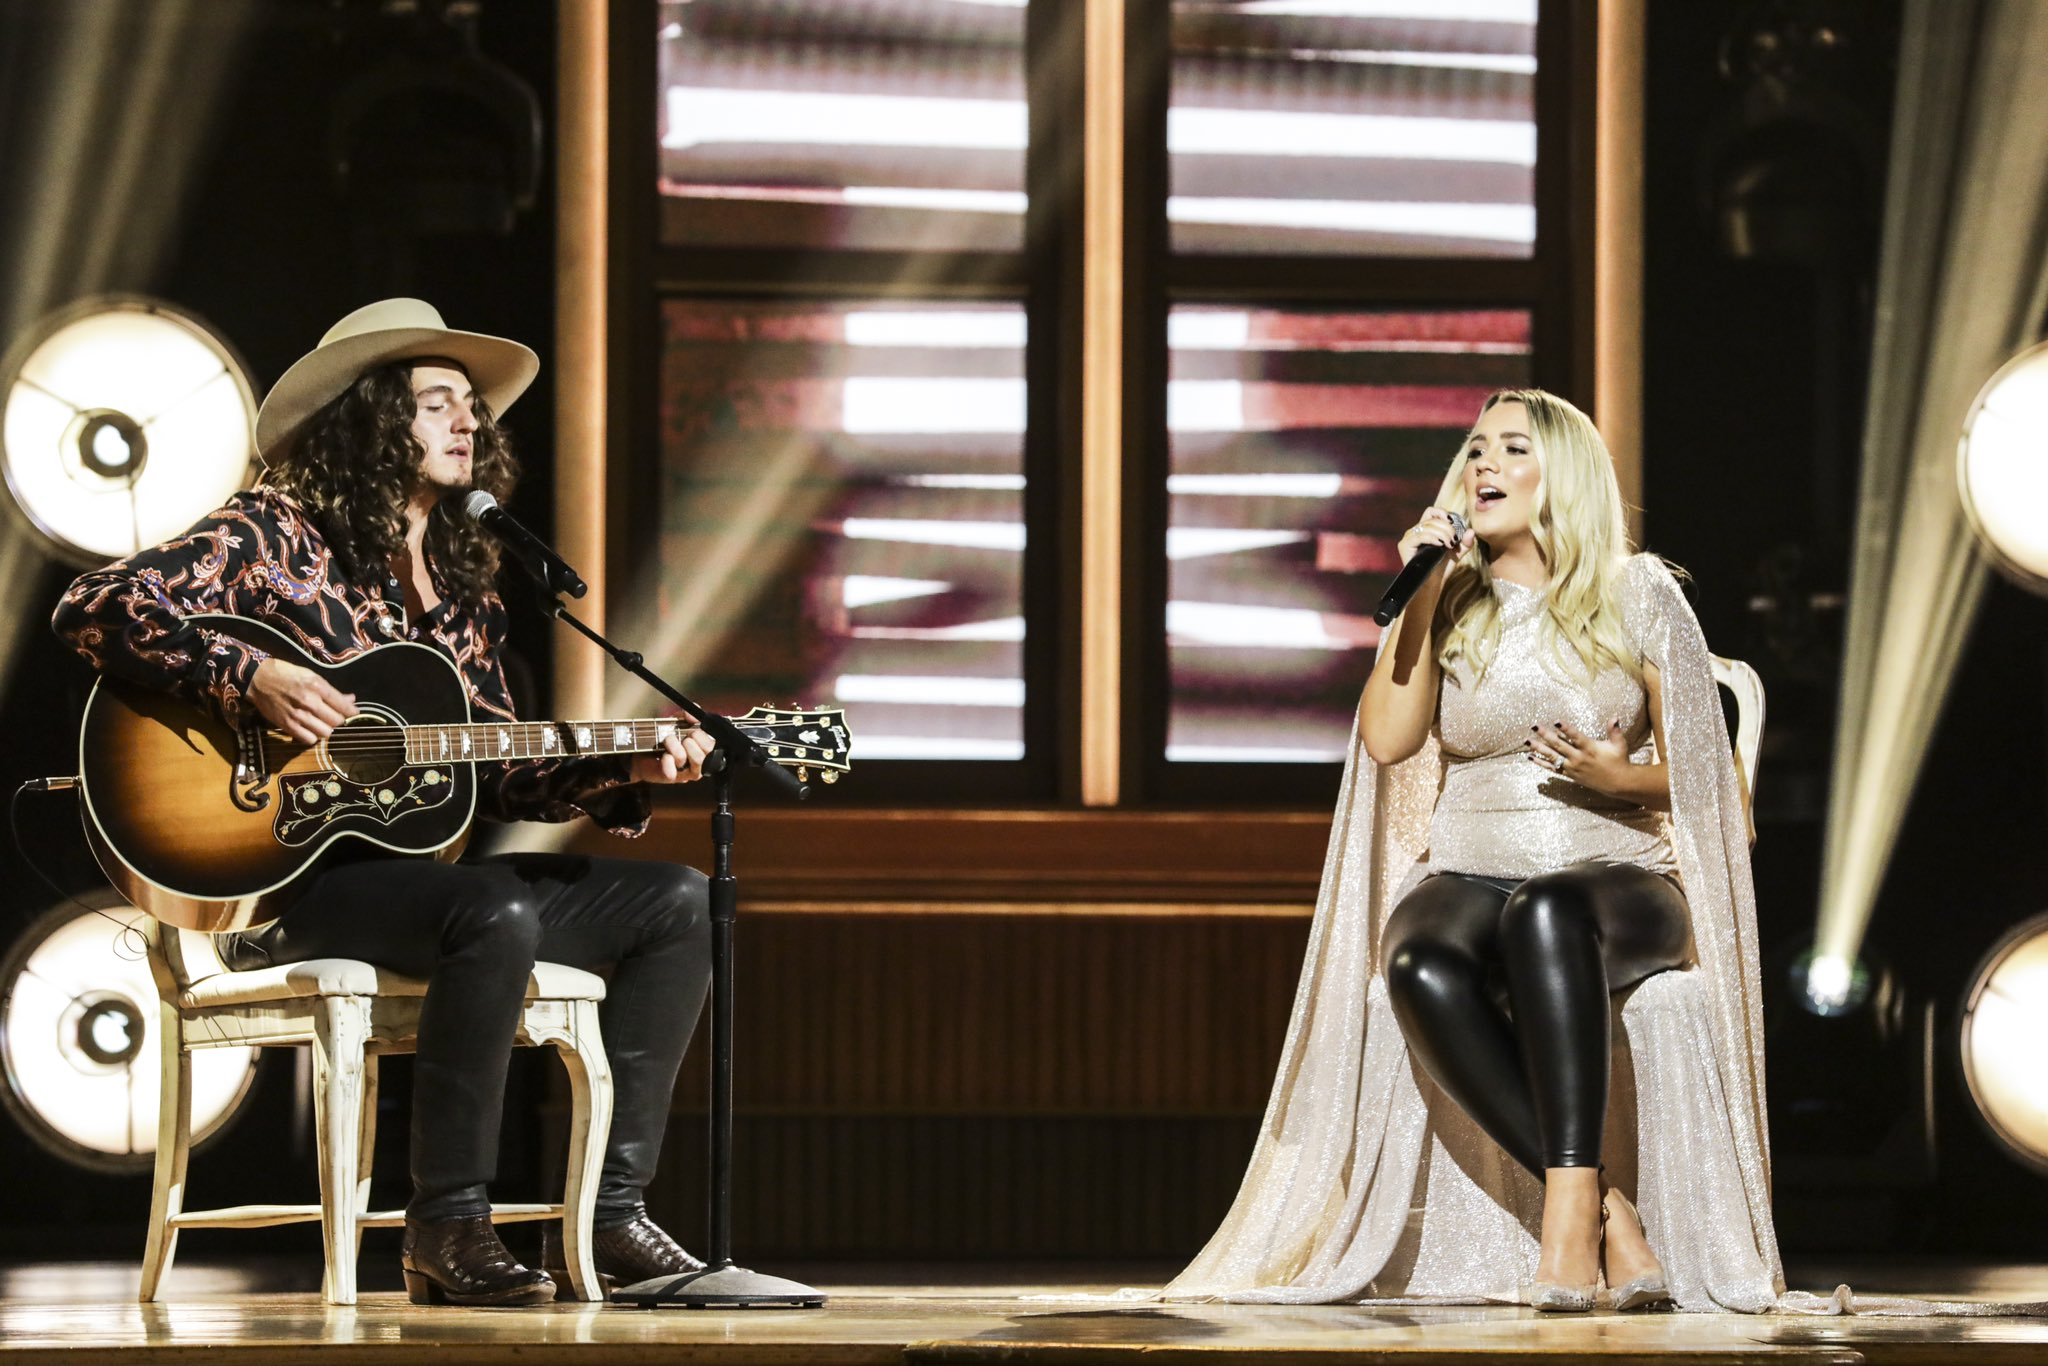 Gabby Barrett performing with Cade Foehner at the Ryman Auditorium in Nashville on the 55th Academy of Country Music Awards